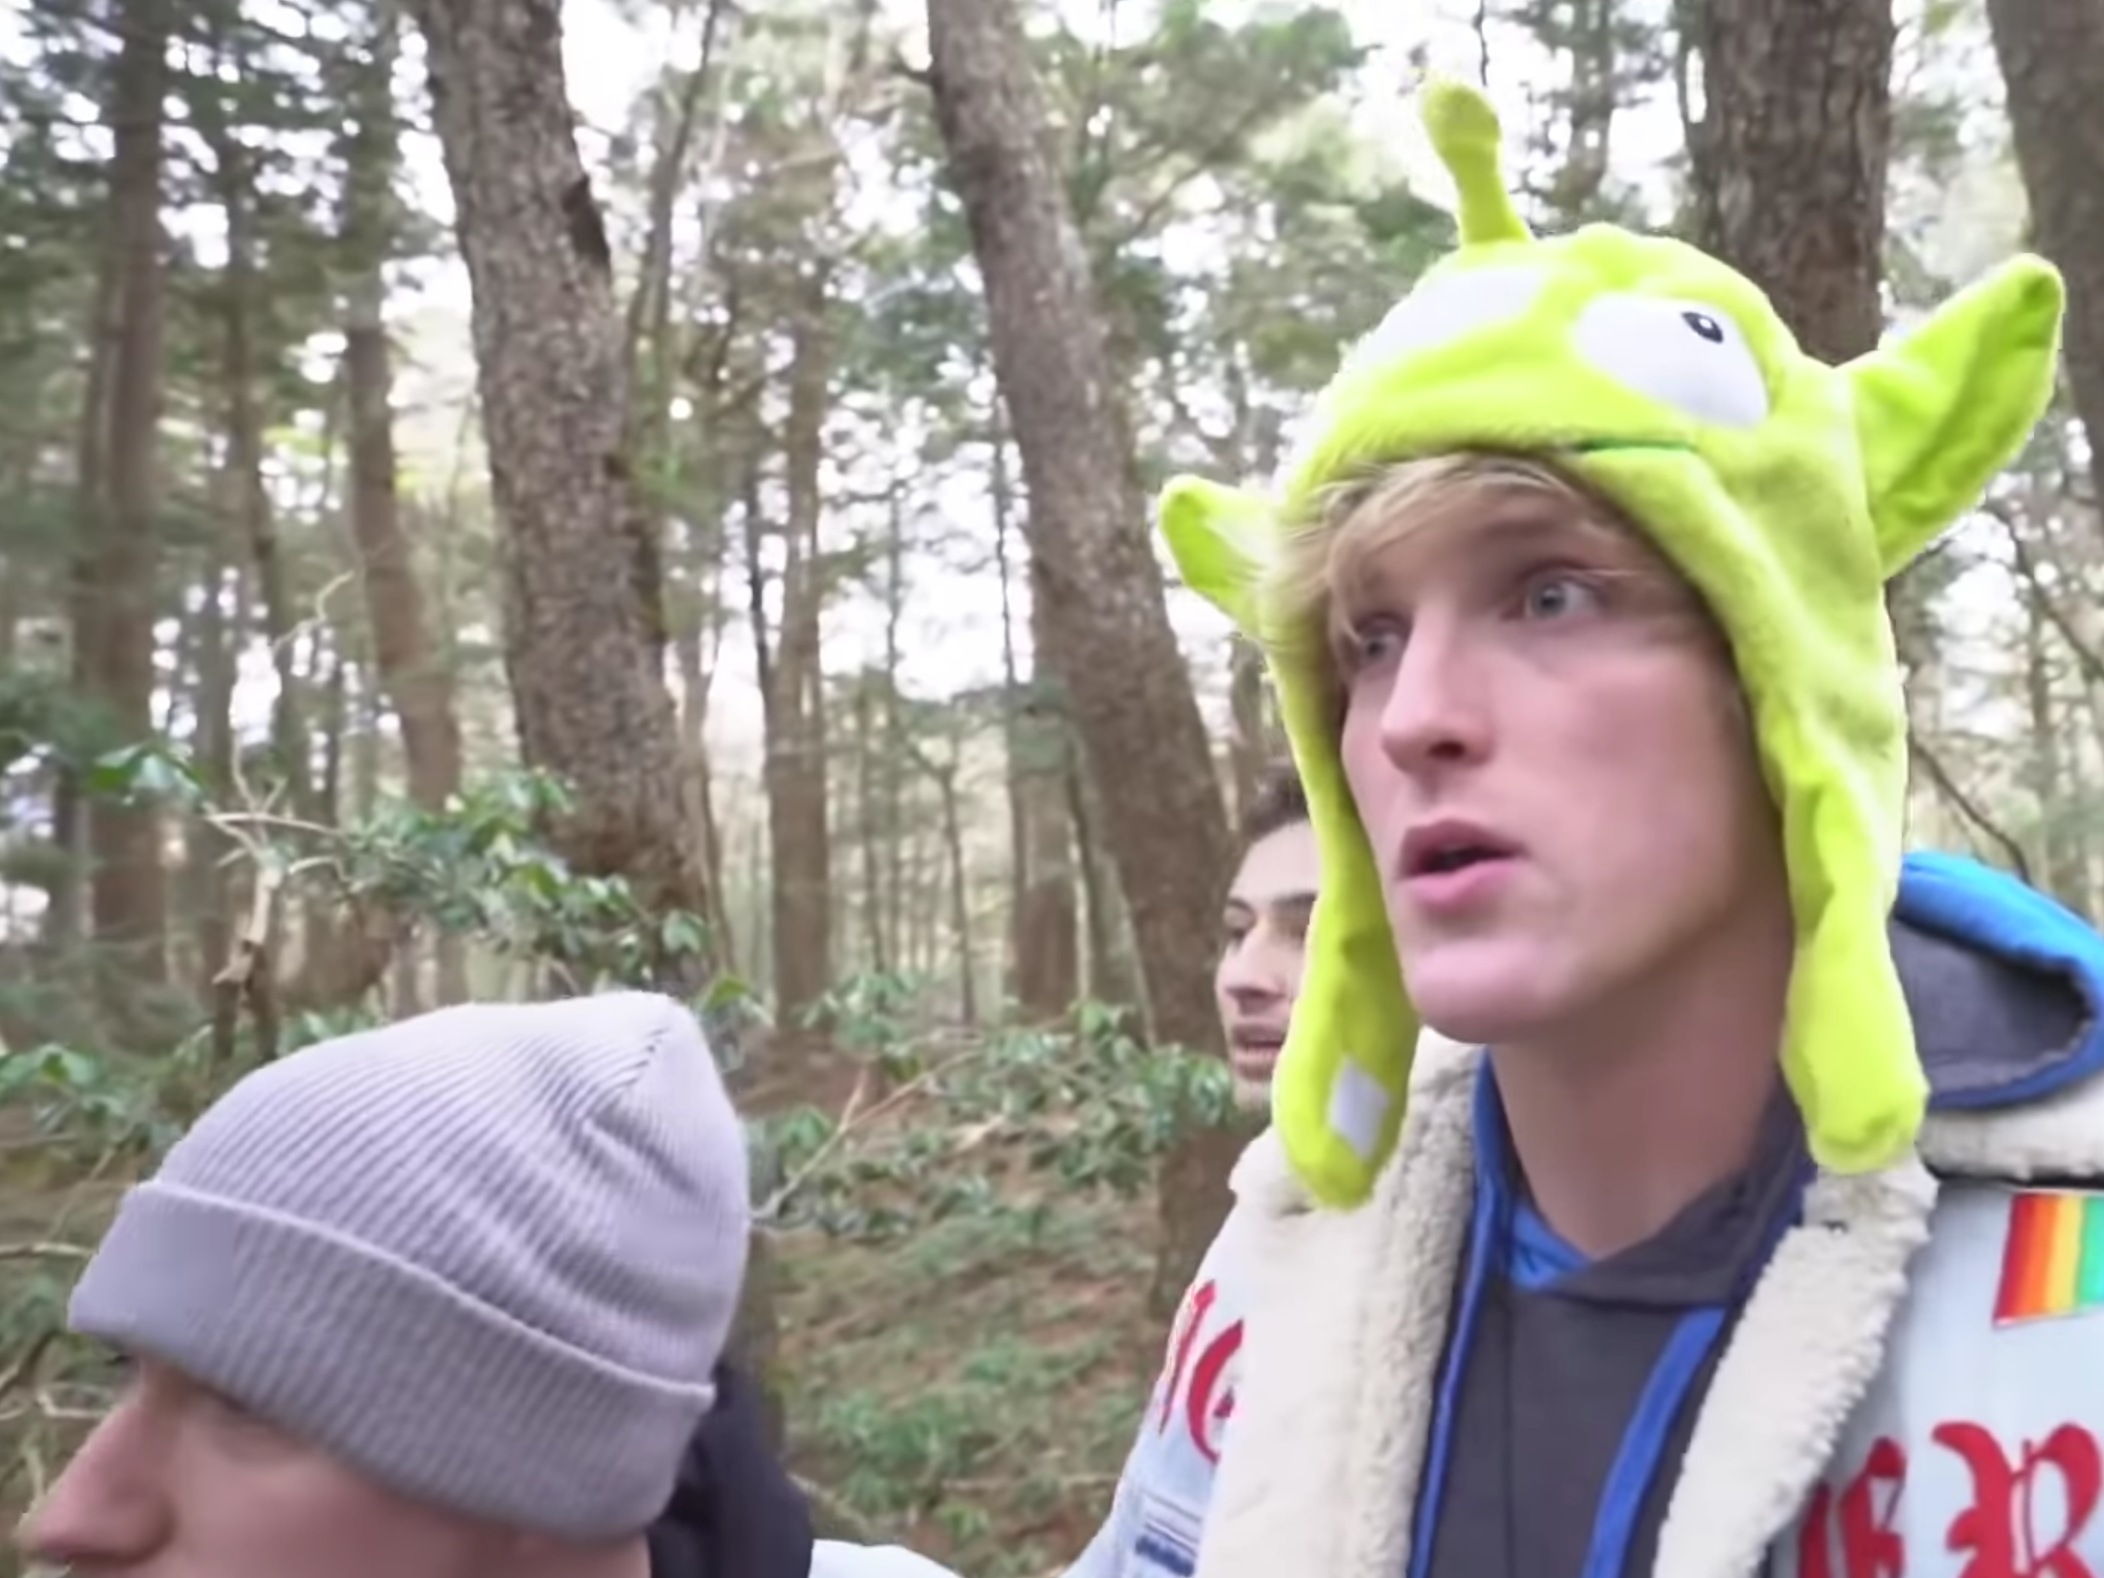 YouTube star Logan Paul apologies for video of apparent suicide victim